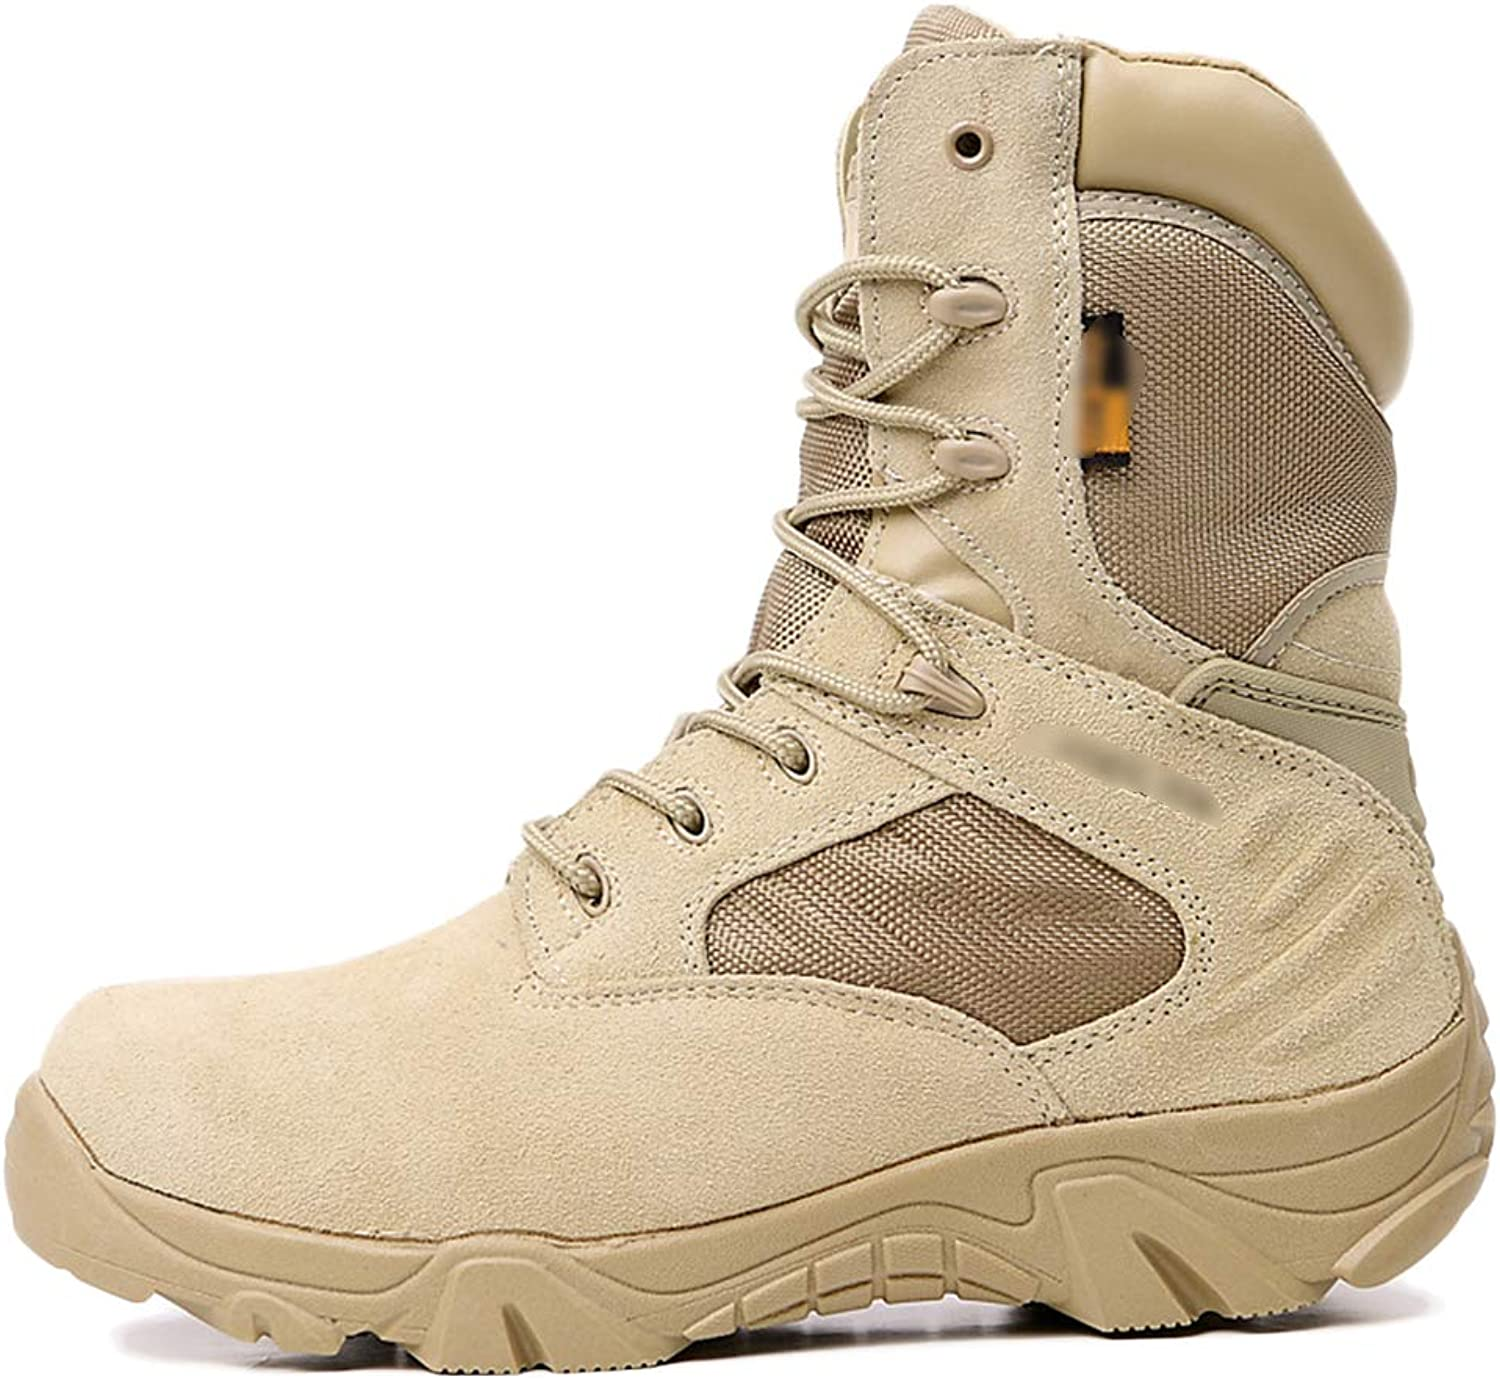 Mens Boots Tactical Desert Patrol Lace-ups Boots Outdoor Hiking High Top Army Boots